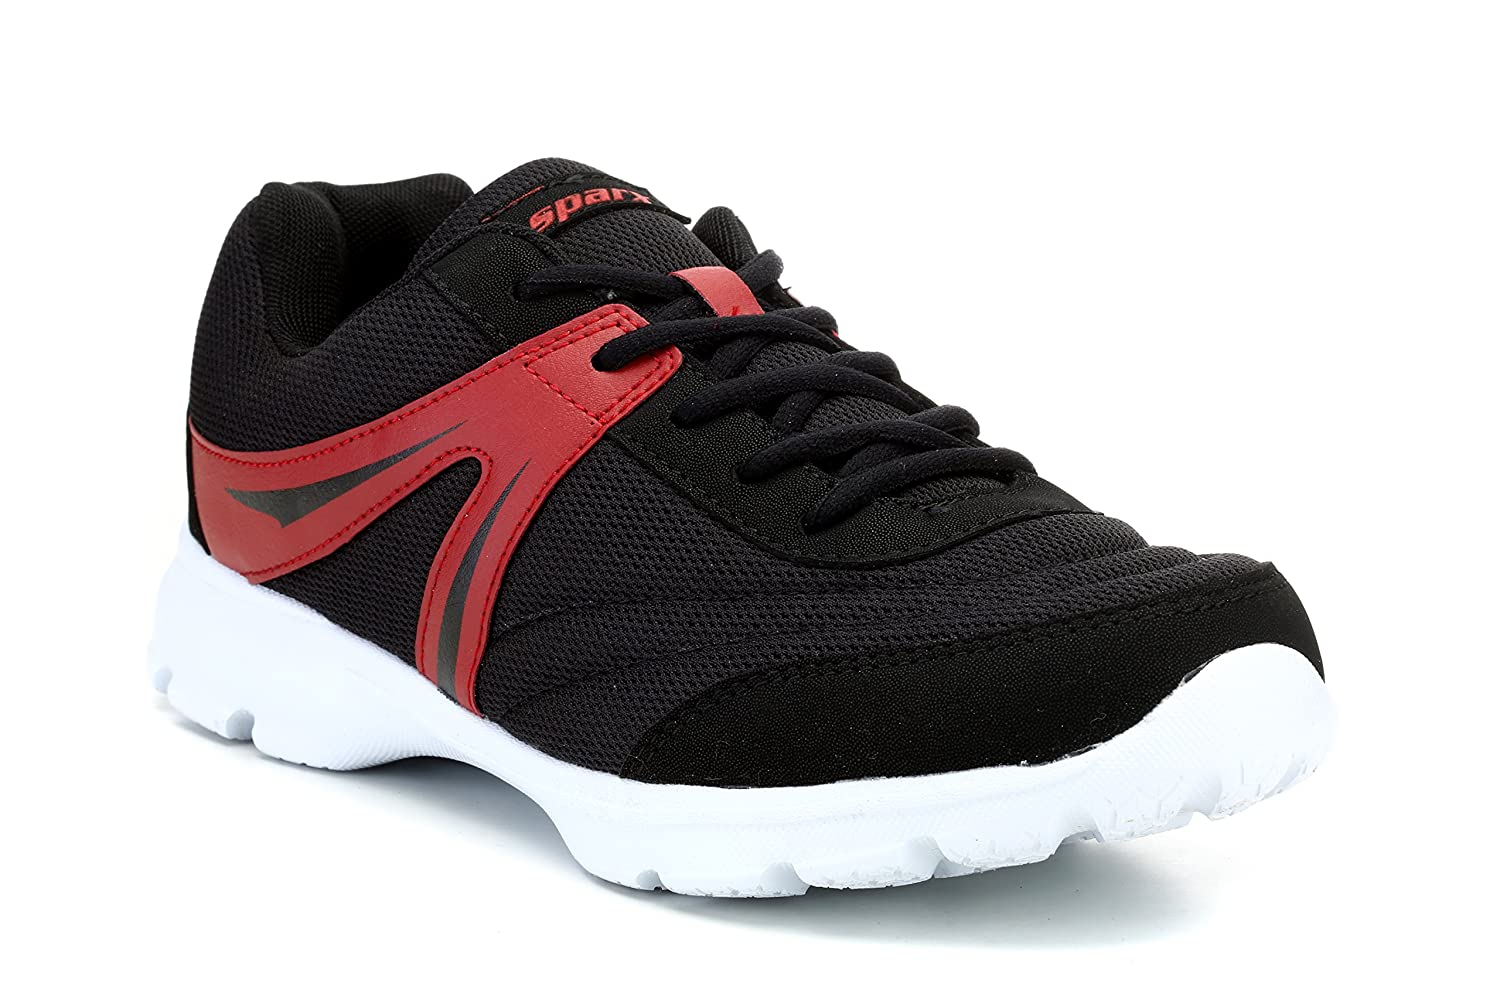 b1406a916e8 Sparx Men s Running Shoes  Buy Online at Low Prices in India - Amazon.in